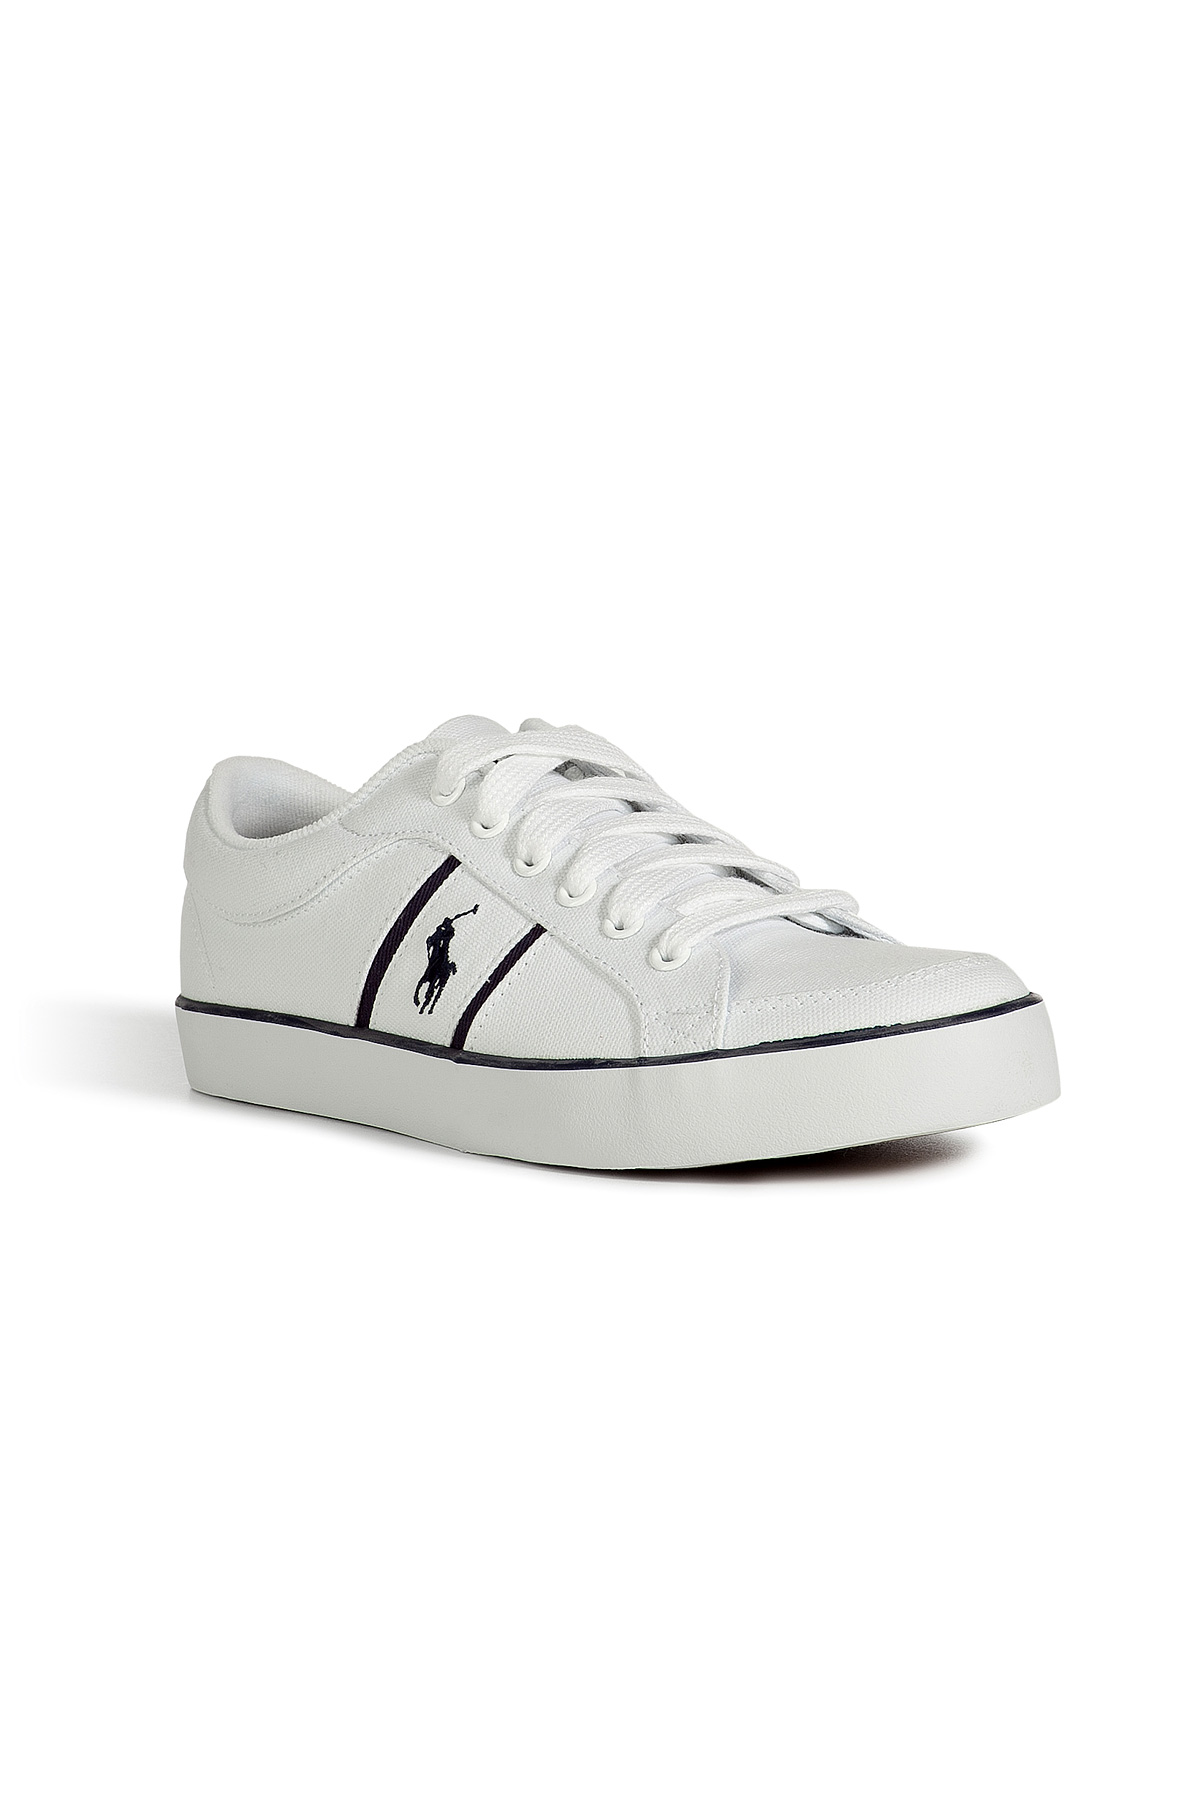 Ralph Lauren White Canvas Shoes Women